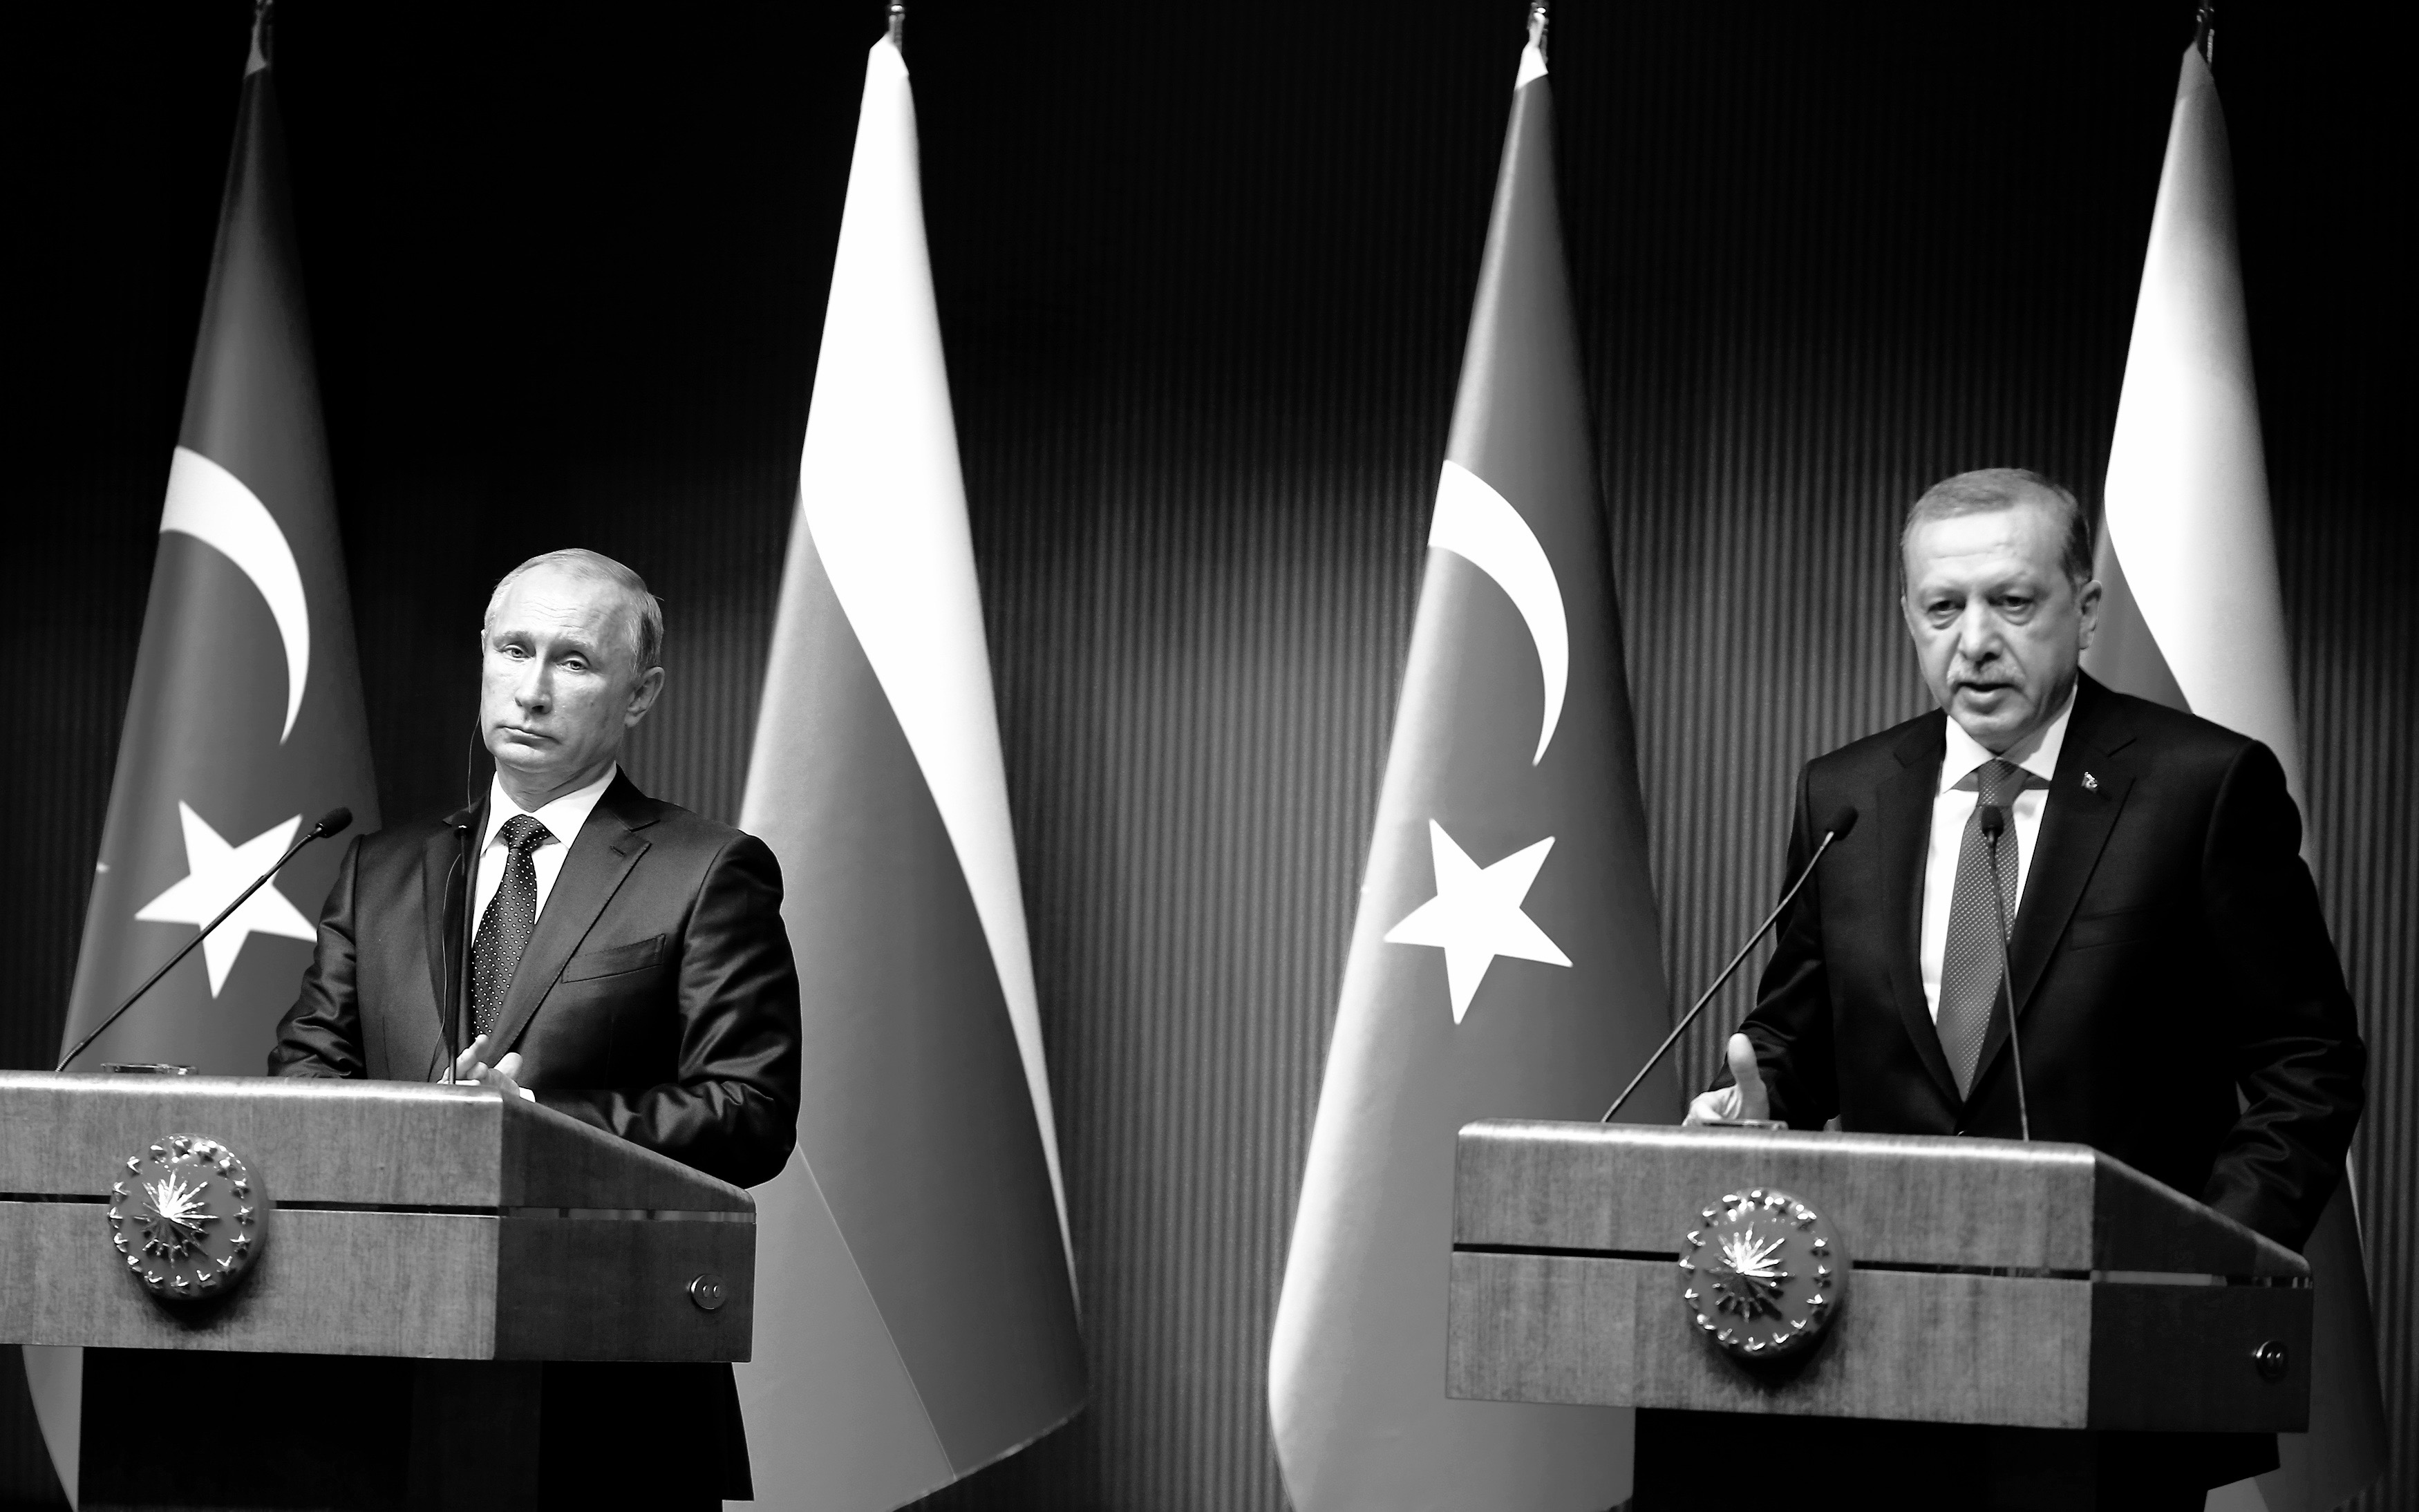 Russia's President Vladimir Putin and Turkey's President Tayyip Erdogan attend a news conference at the Presidential Palace in Ankara December 1, 2014. REUTERS/Umit Bektas (TURKEY - Tags: POLITICS) - RTR4GAUT